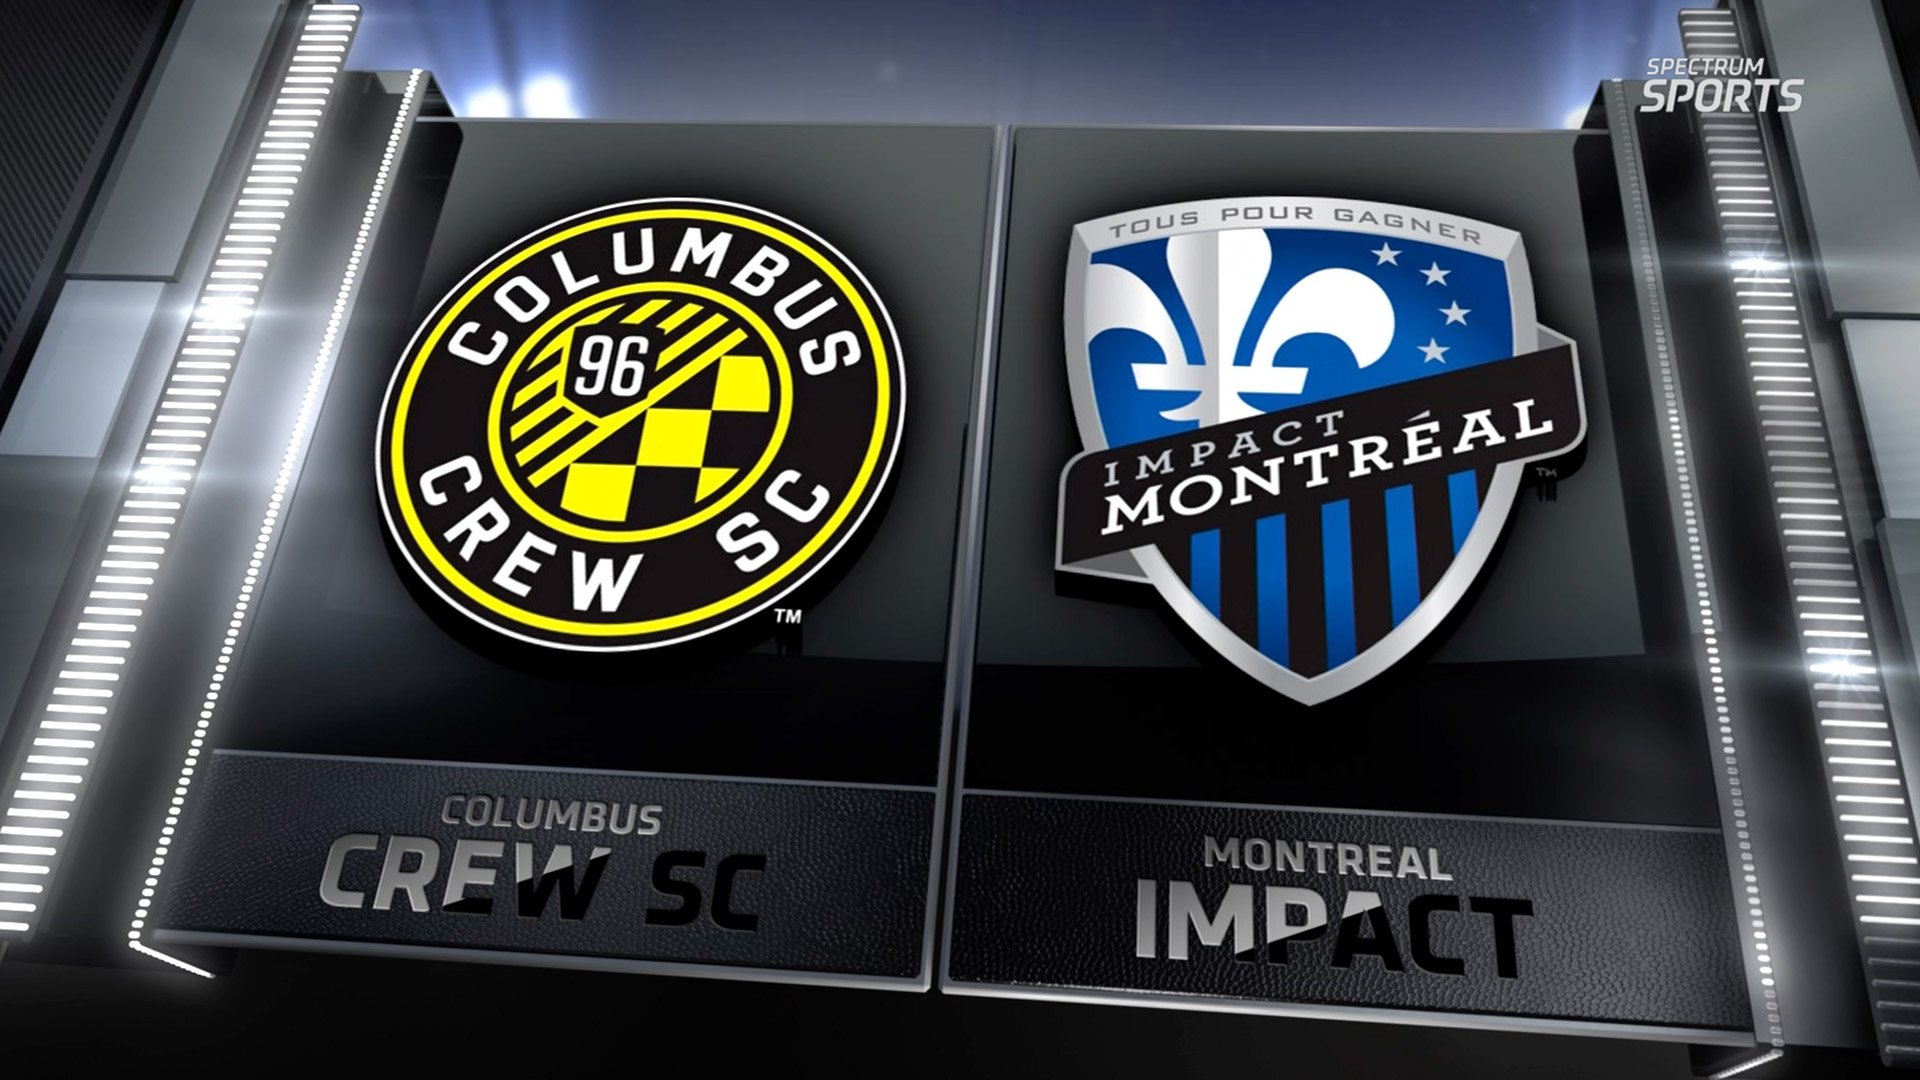 """""""Love those saucy volleys."""" @DwightBurgess & @neilsika break down #CrewSC's dominant performance in #CLBvMTL. https://t.co/hUzPSihSyj"""